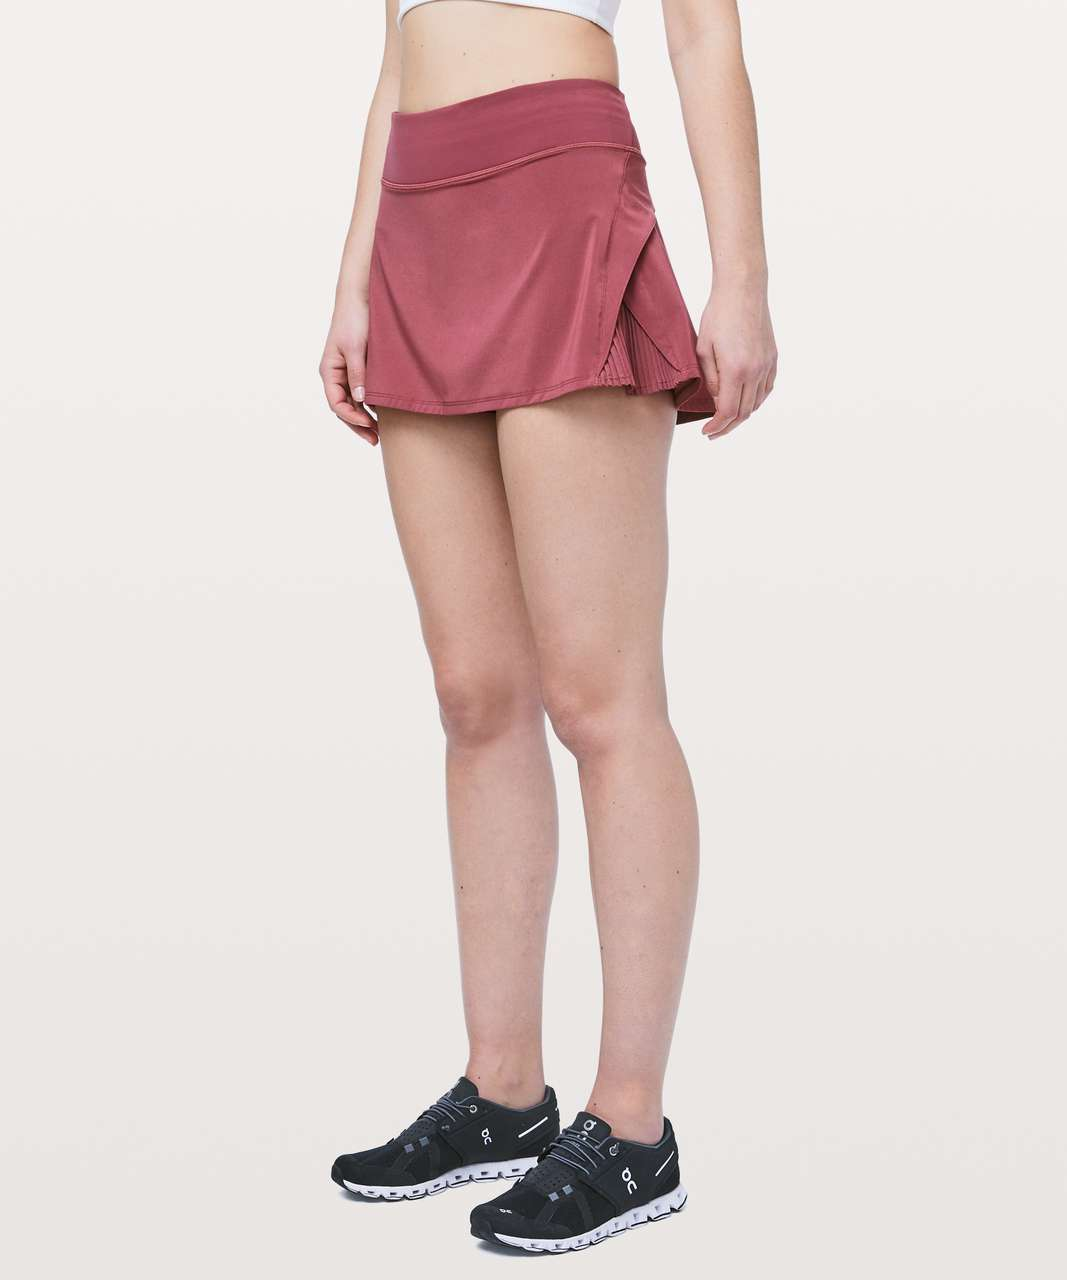 "Lululemon Play Off The Pleats Skirt *13"" - Misty Merlot"